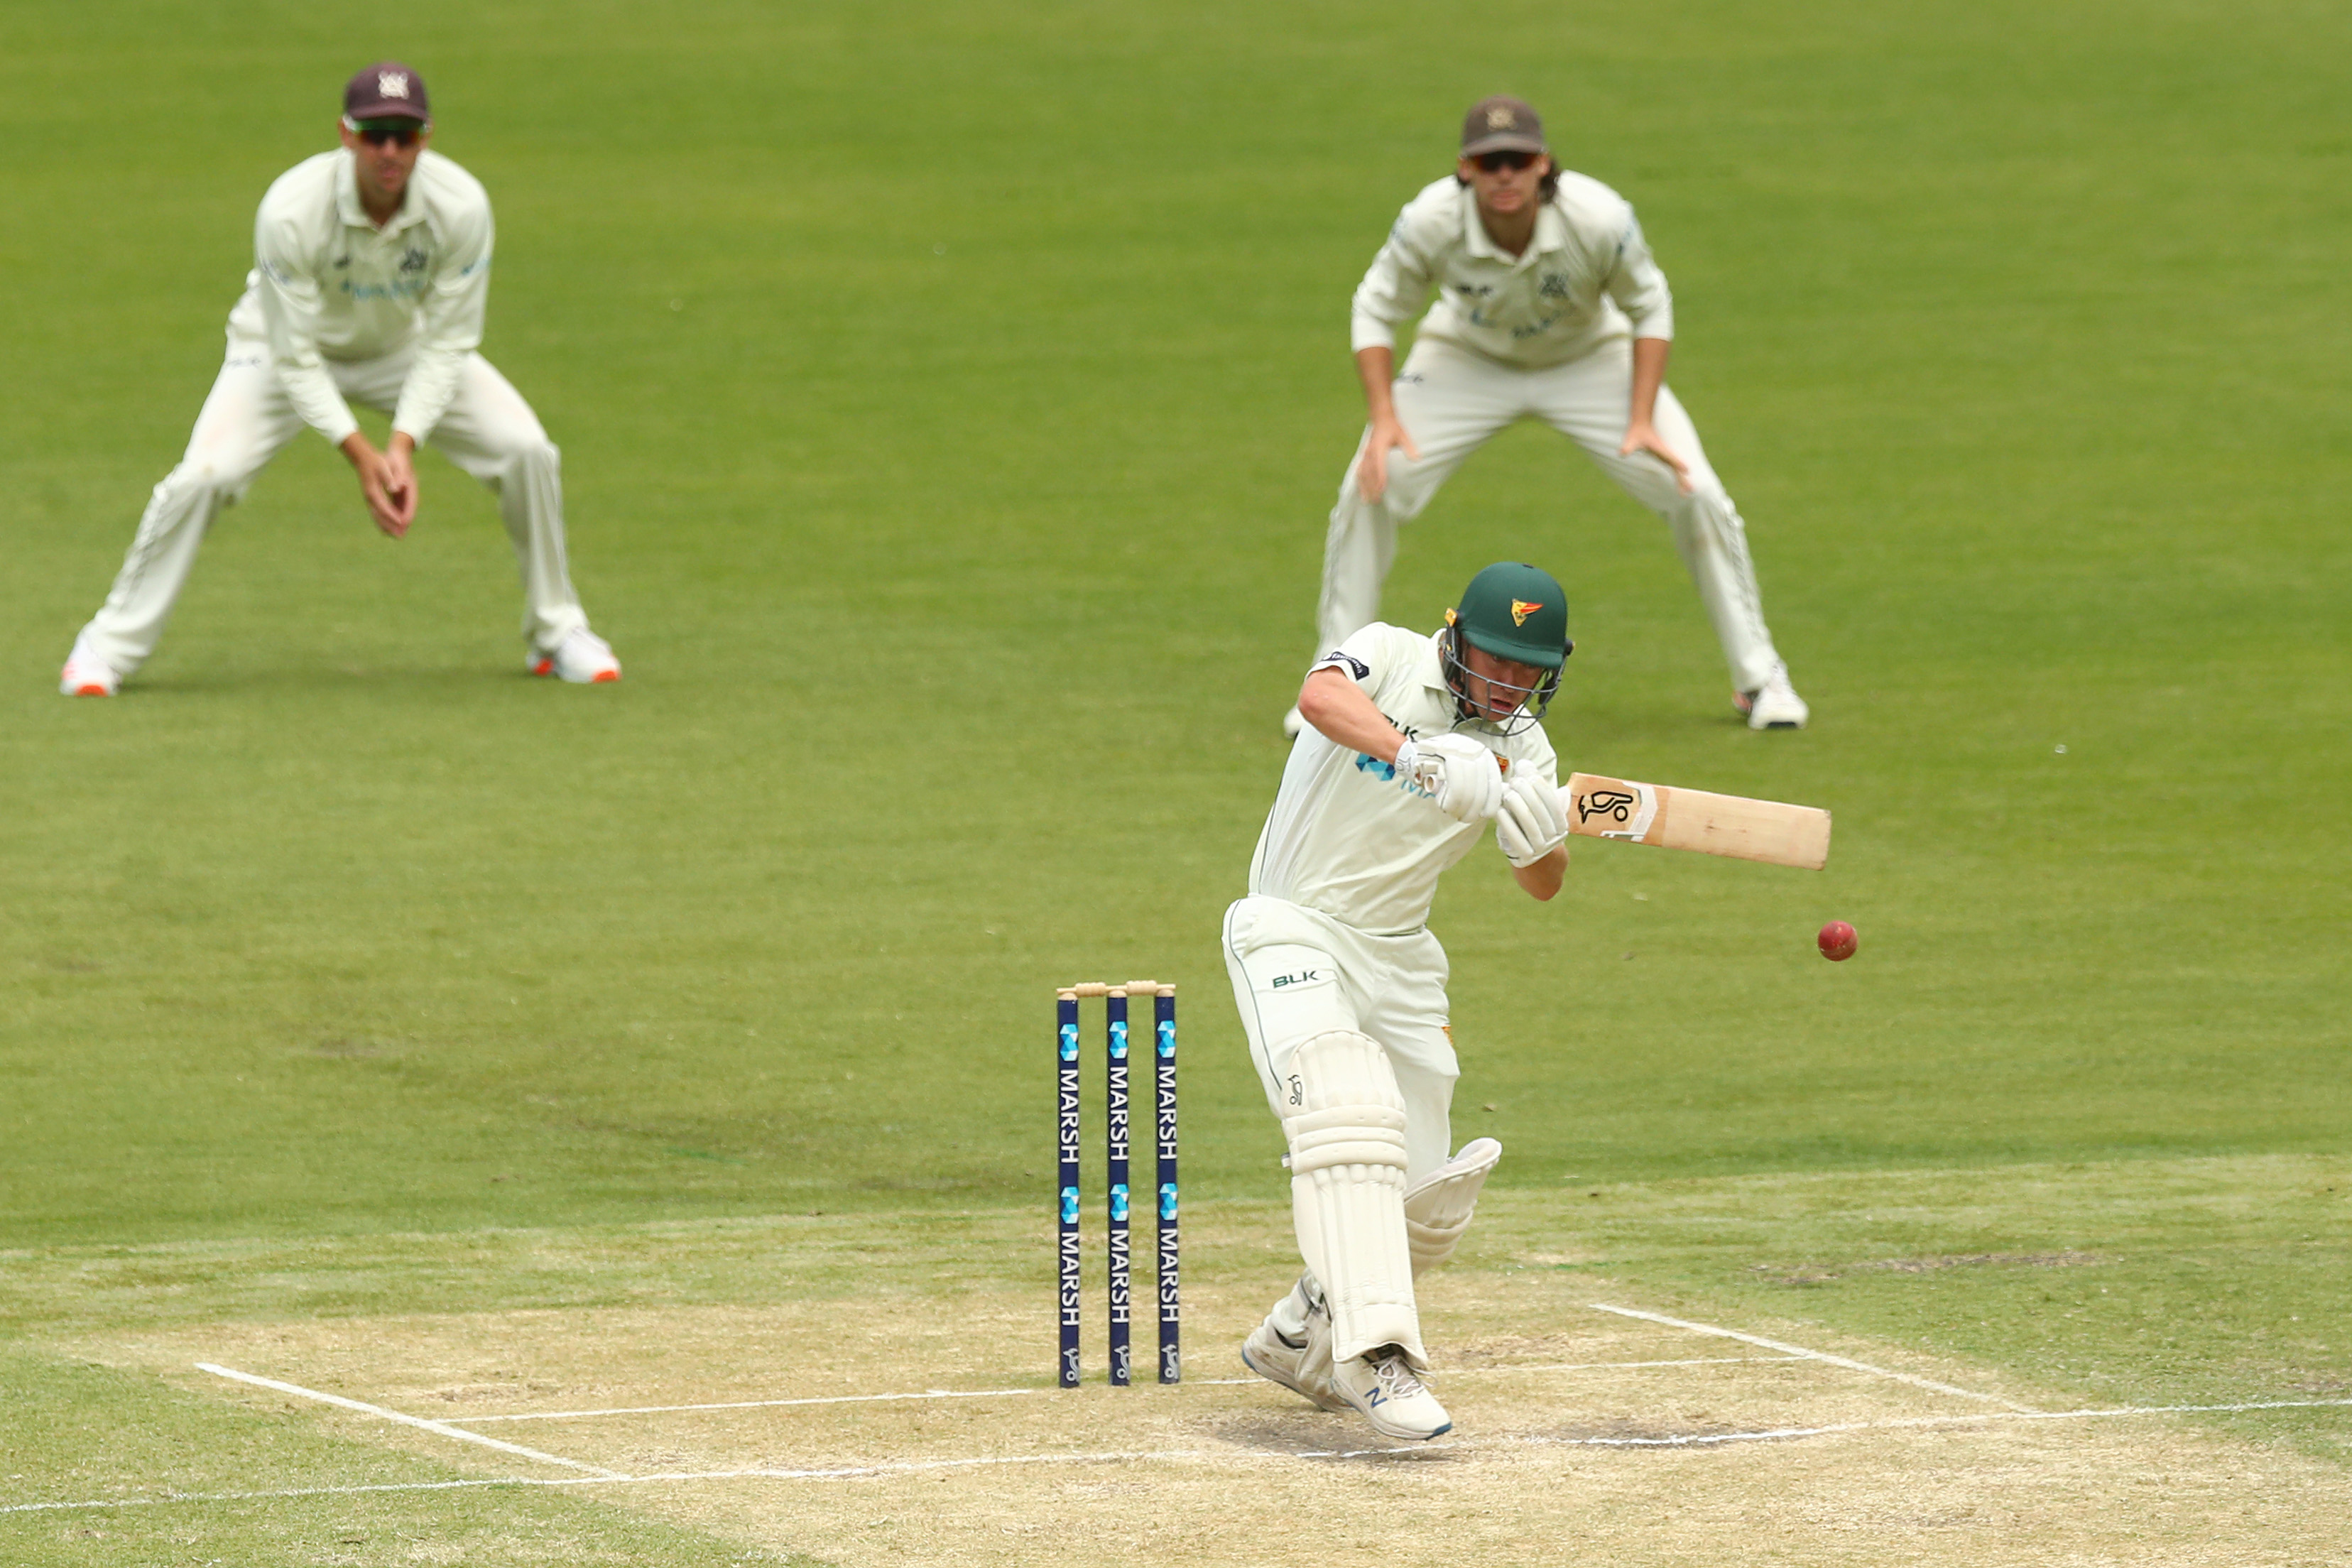 Doran has now made scores of 97, 98 and 99 for Tasmania // Getty